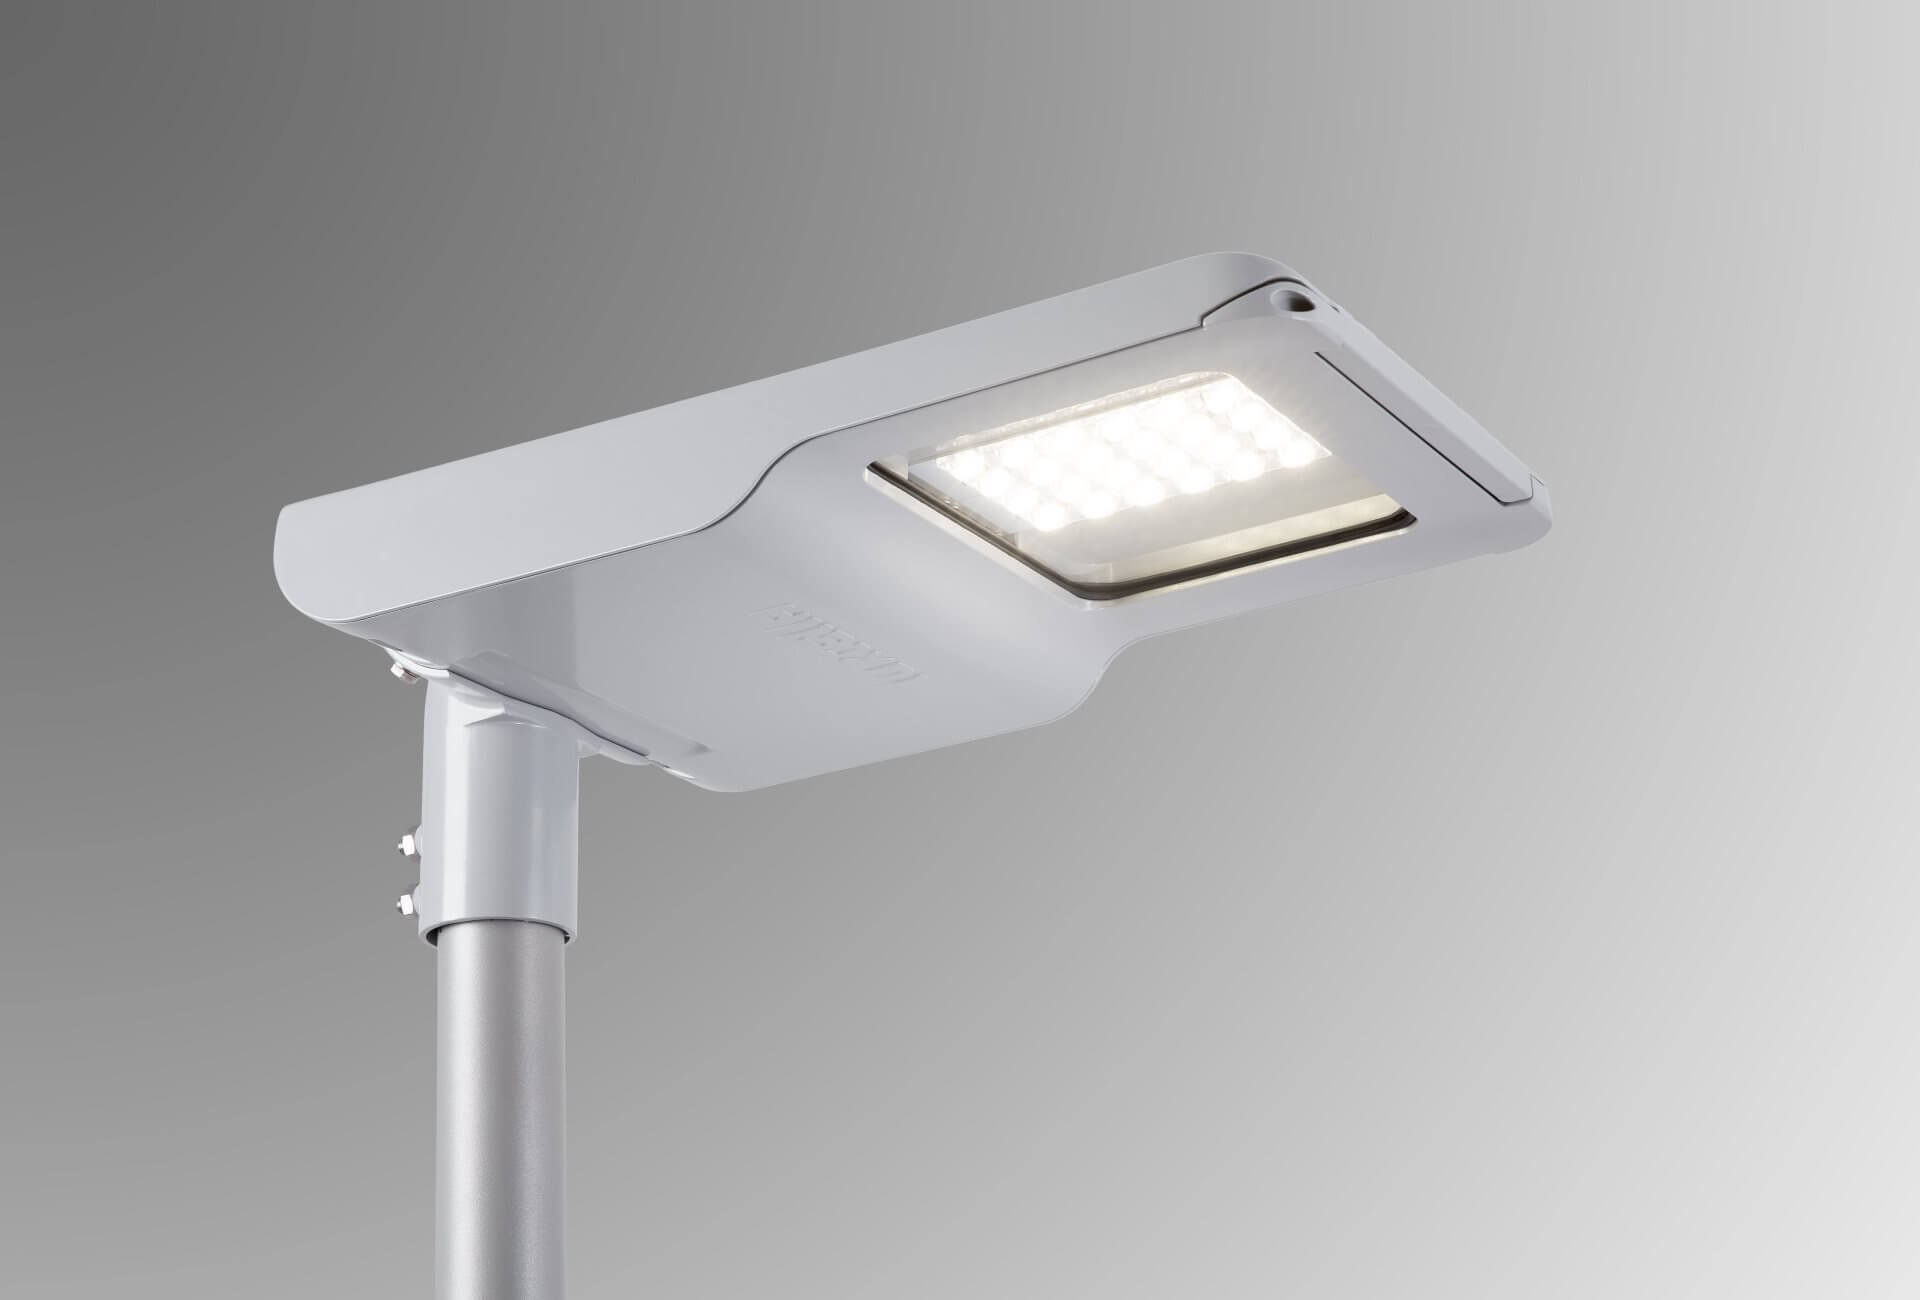 Luxtella Led Street Light Or Lamp For Public Lighting Solar With 12 24v Circuit Buy